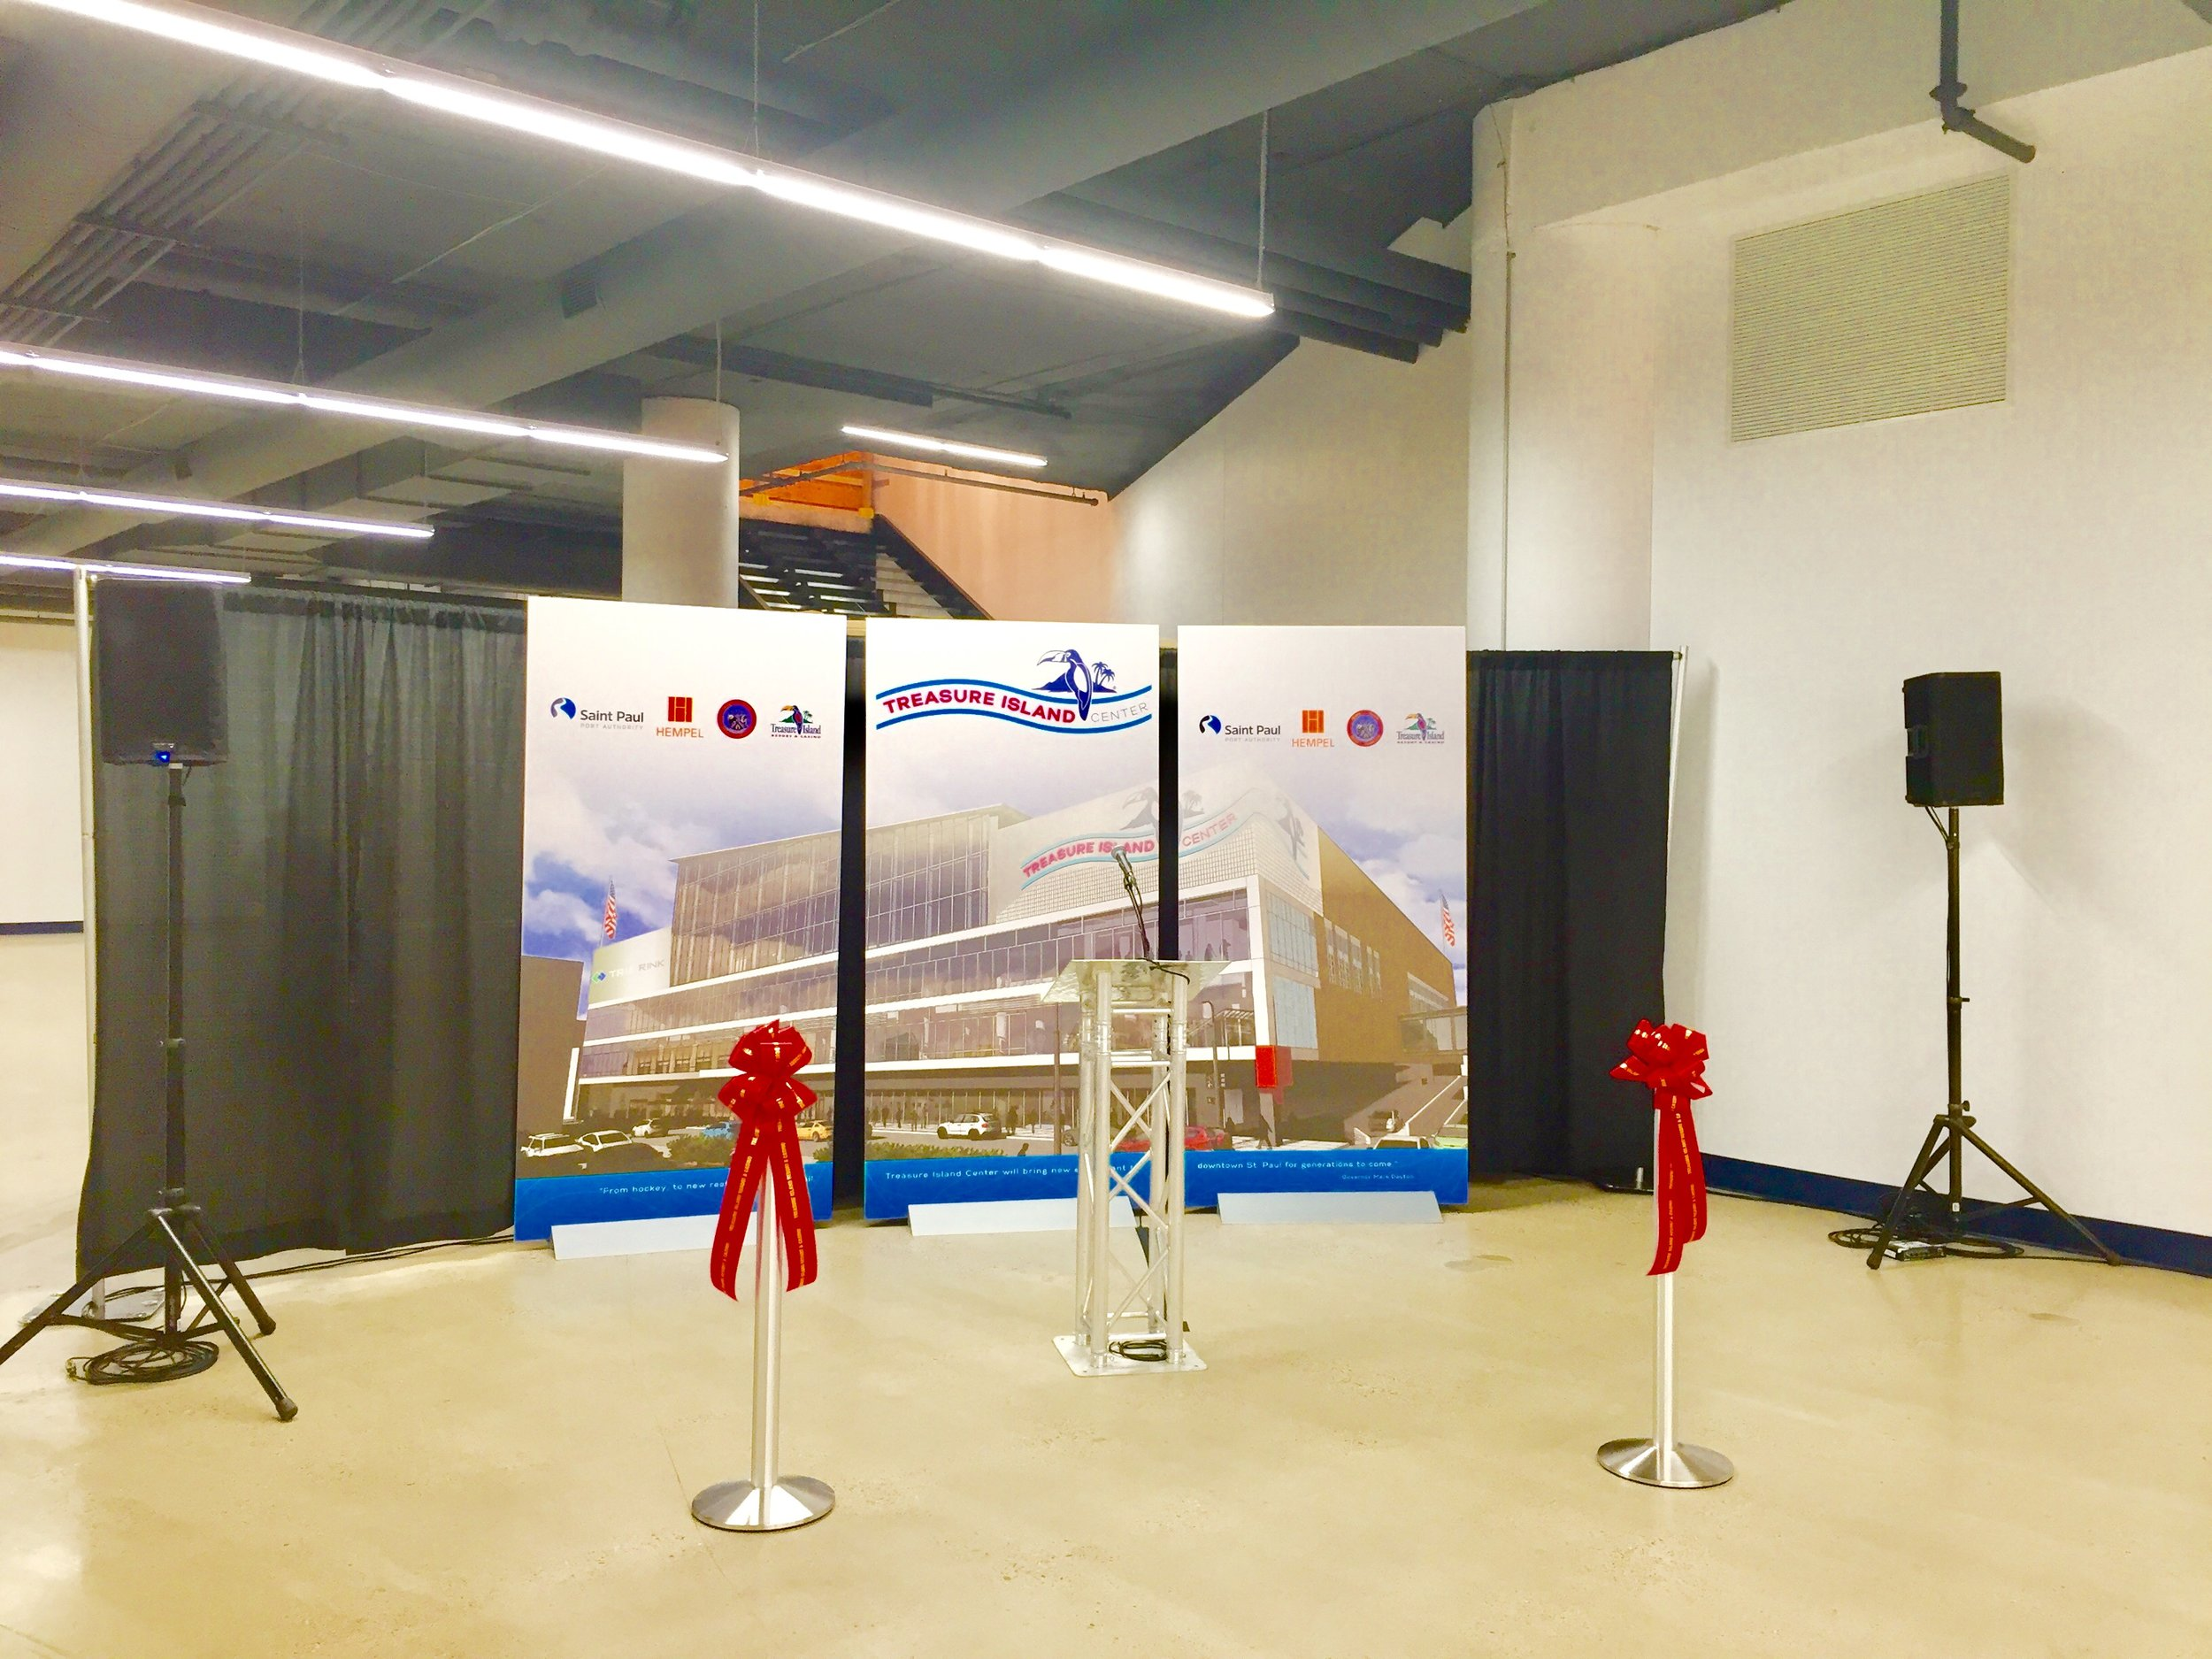 Picture of AV for You set up at the Treasure Island Center